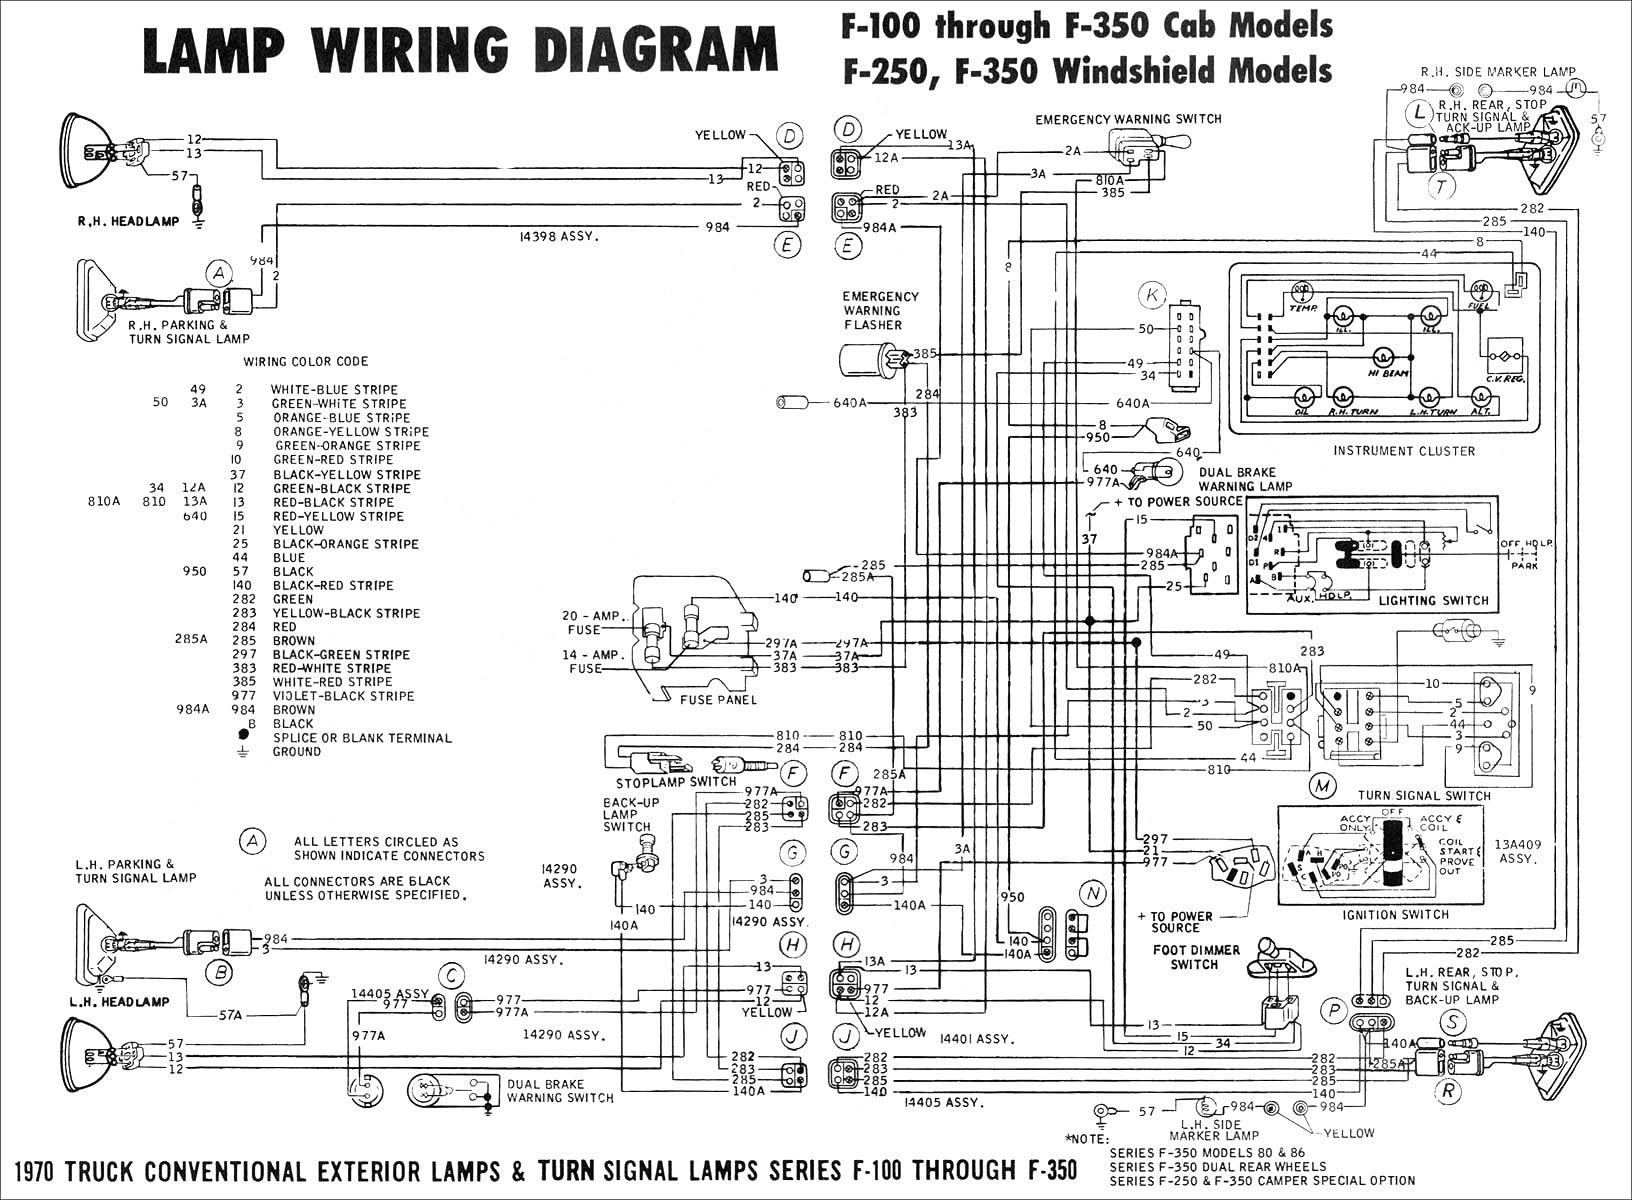 Honda Rebel 250 Wiring Diagram 1989 Rinker Wiring Diagram Data Schematics Wiring Diagram • Of Honda Rebel 250 Wiring Diagram